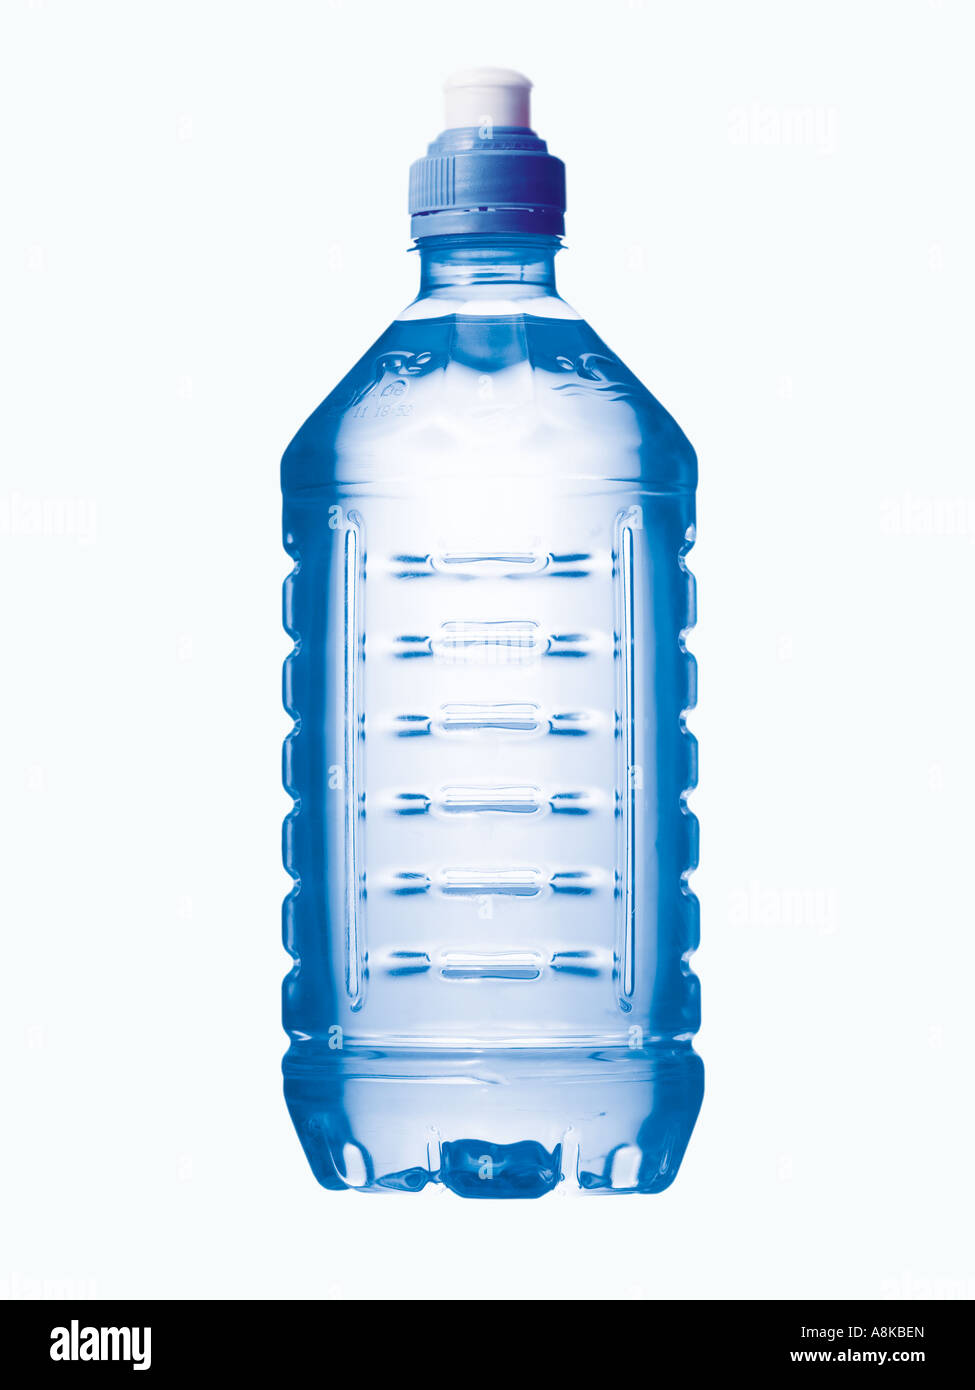 A mineral water bottle - Stock Image